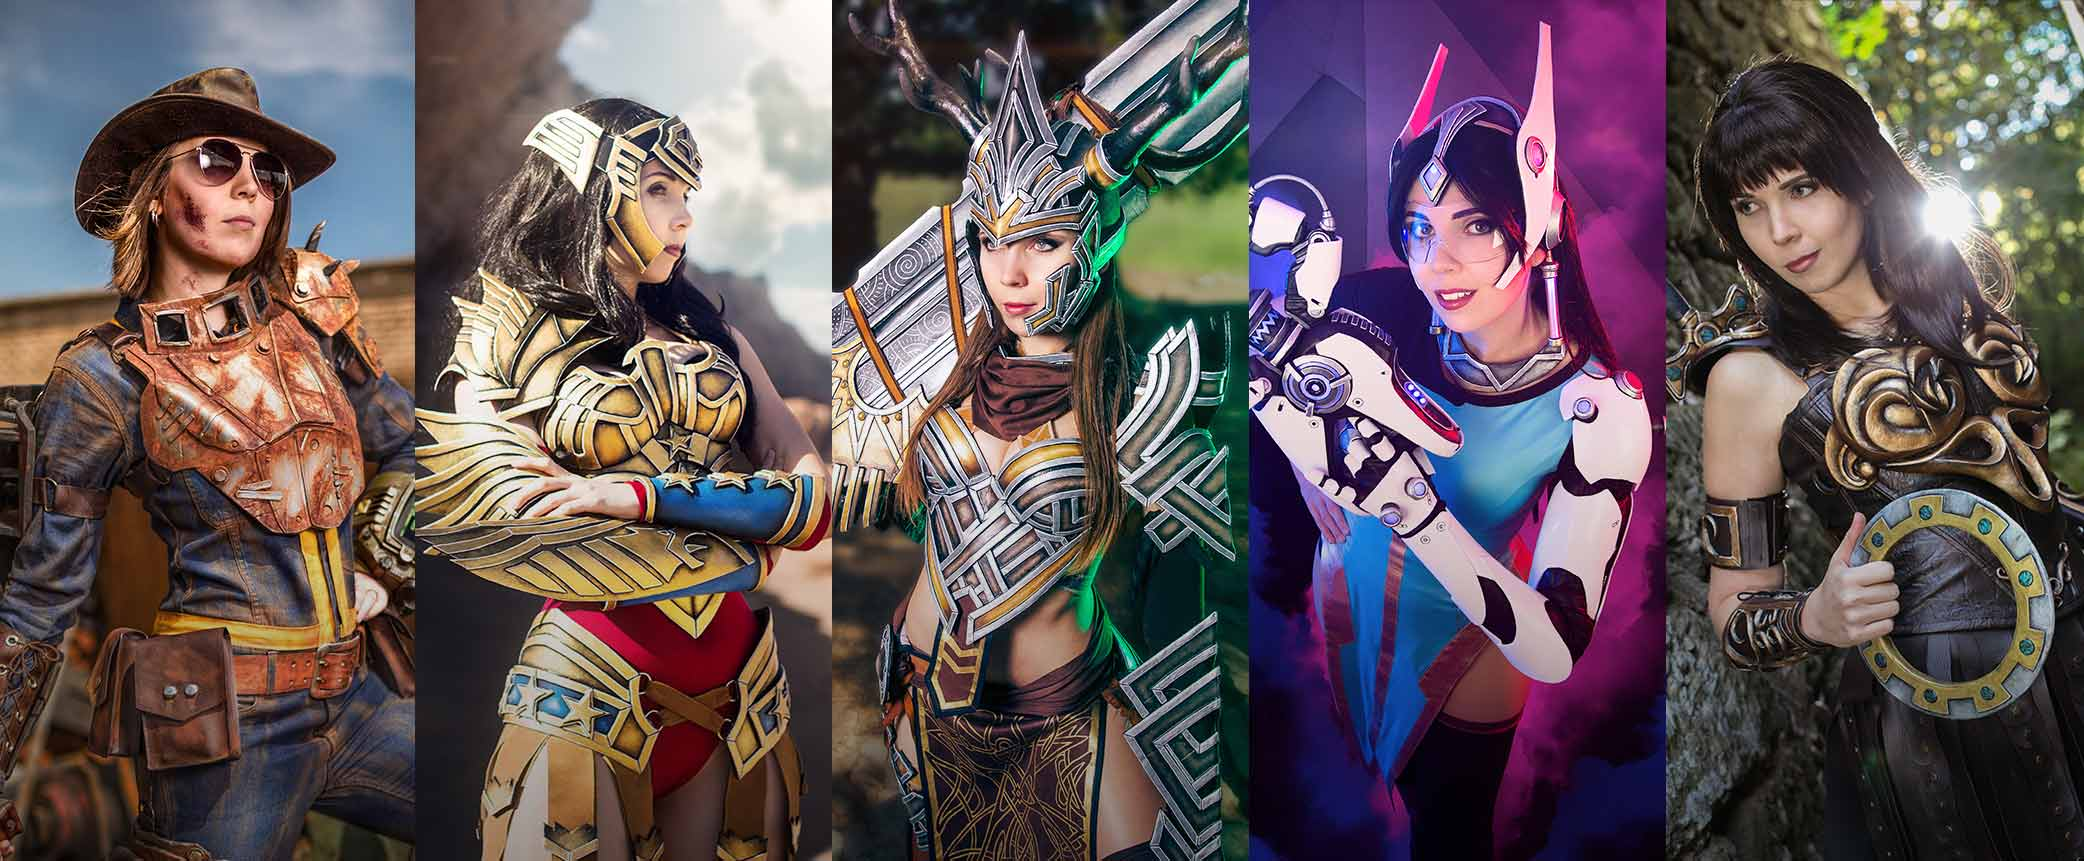 KamuiCosplay - Tutorials and Books for Foam and Worbla Cosplay Armor